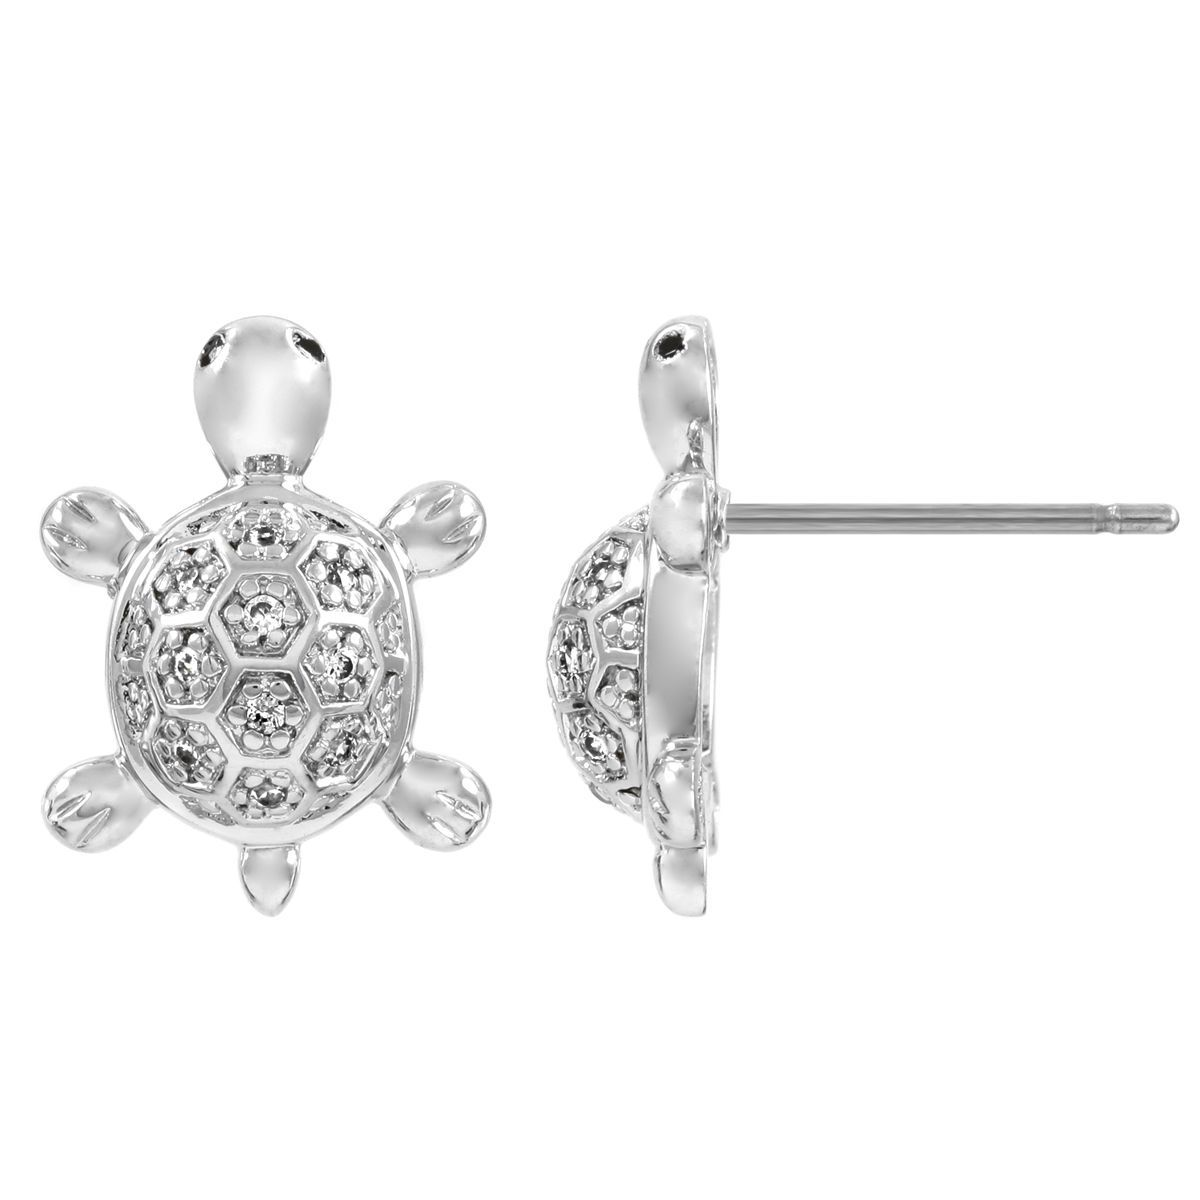 excursion com betsey dp stud sea turtle amazon earrings johnson jewelry